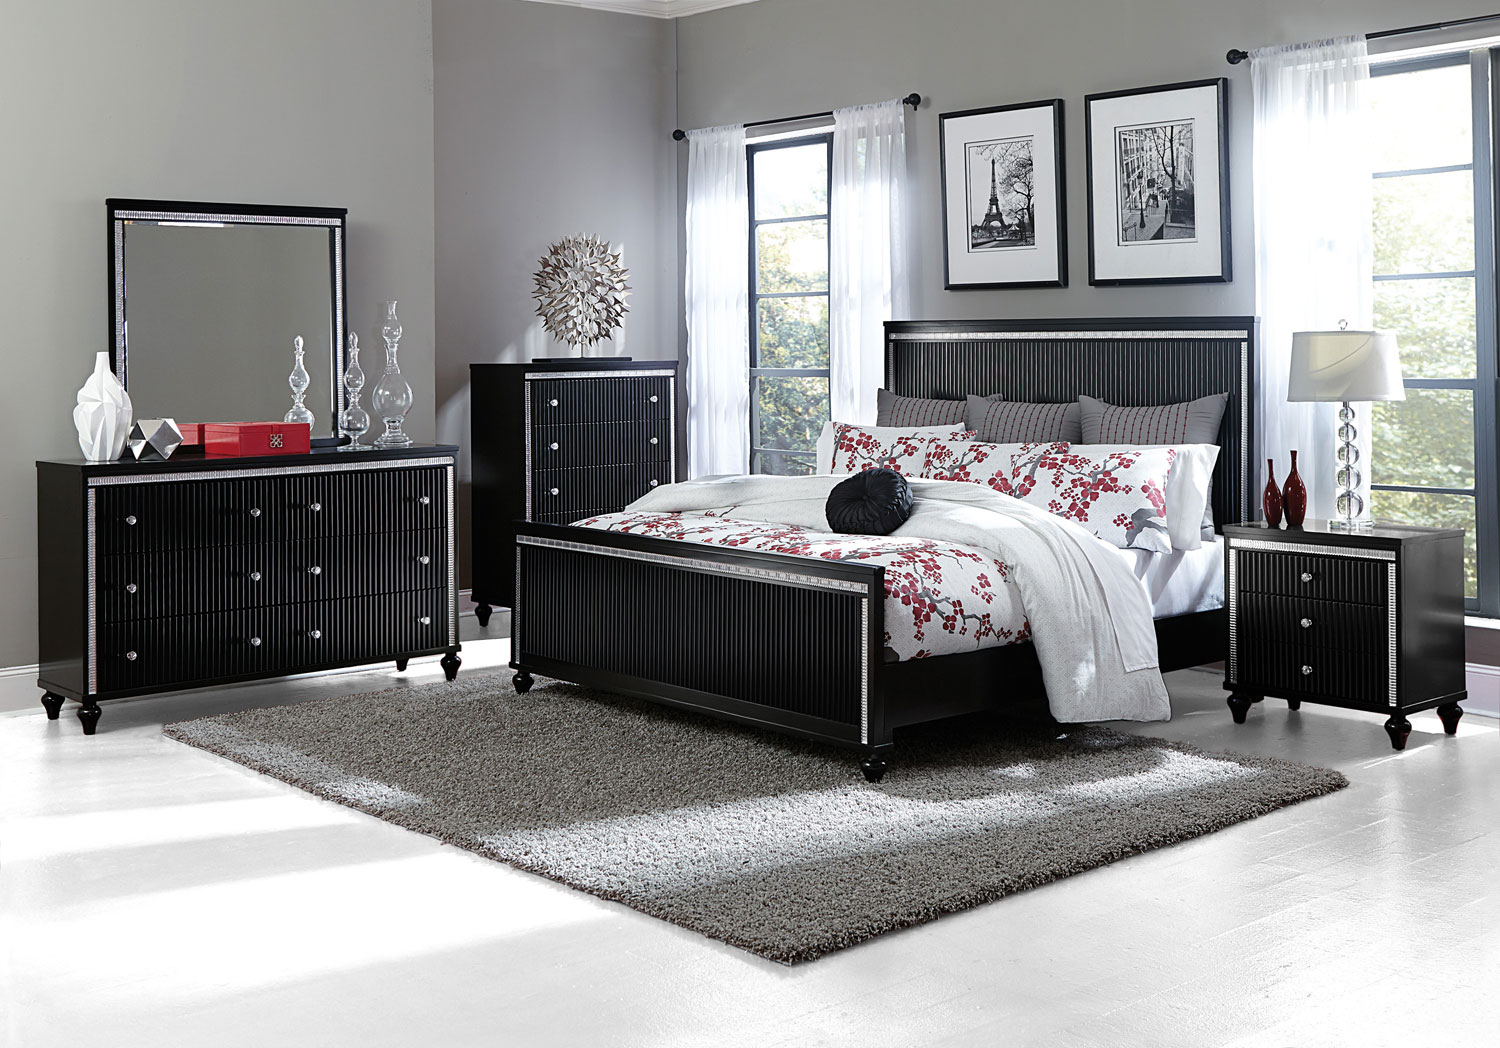 Homelegance Sakura Panel Bedroom Set - Black